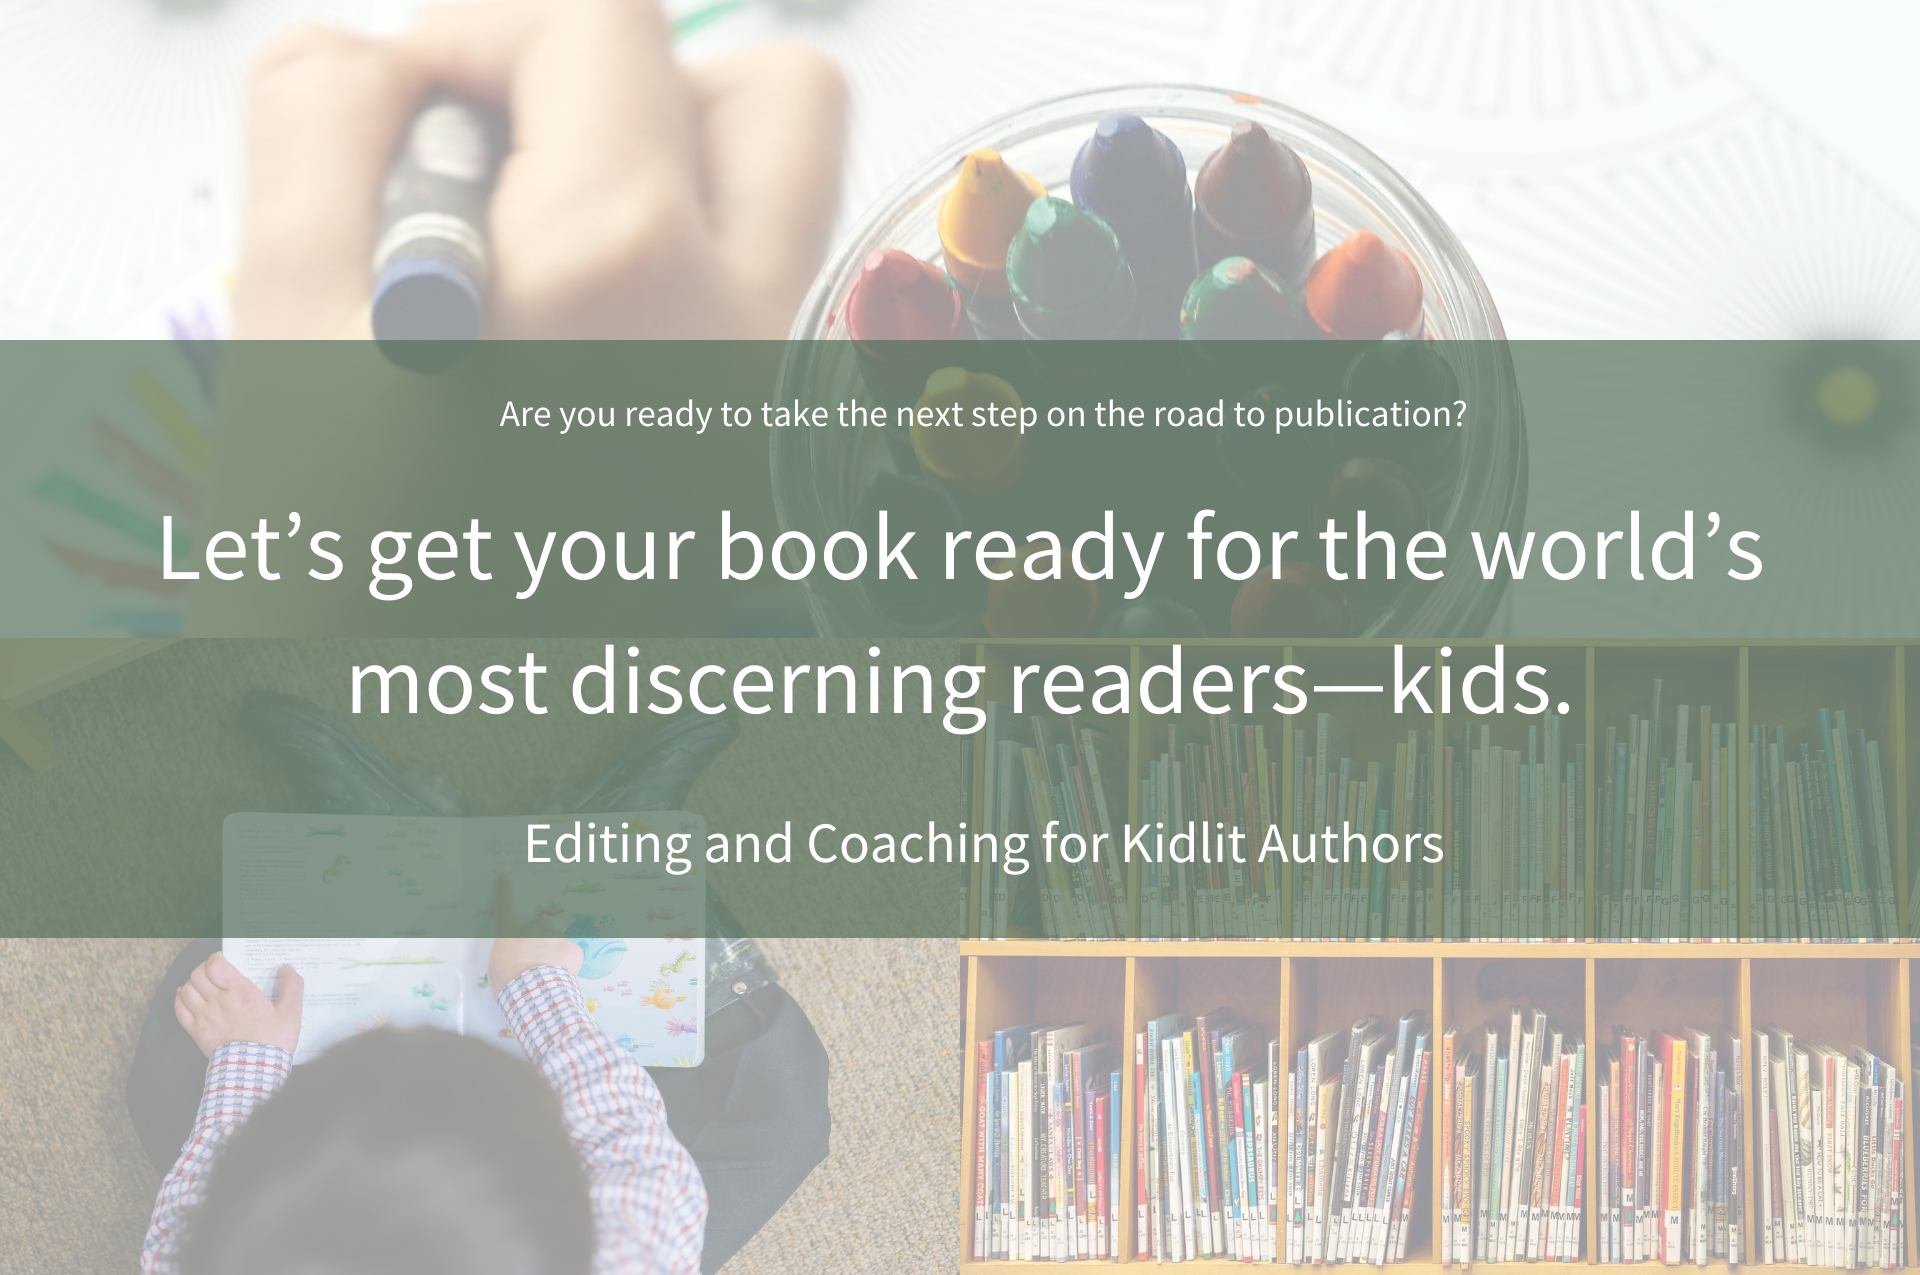 Let's get your book ready for the world's most discerning audience--kids.